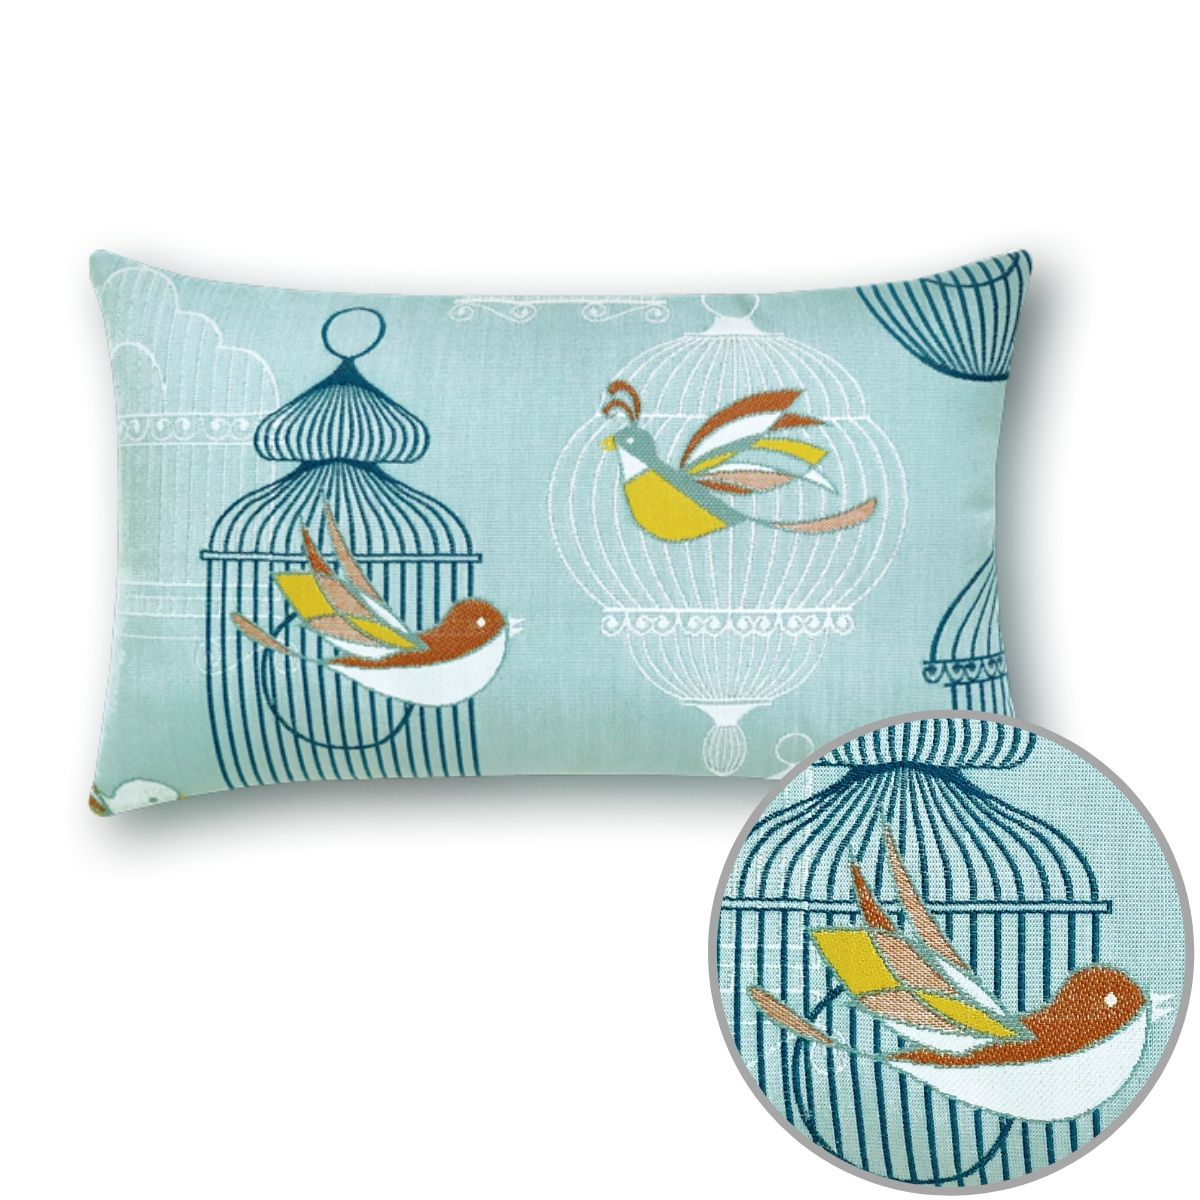 The birds and cages lumbar pillow from Elaine Smith brings a fun flair to the furnishings it graces..jpg